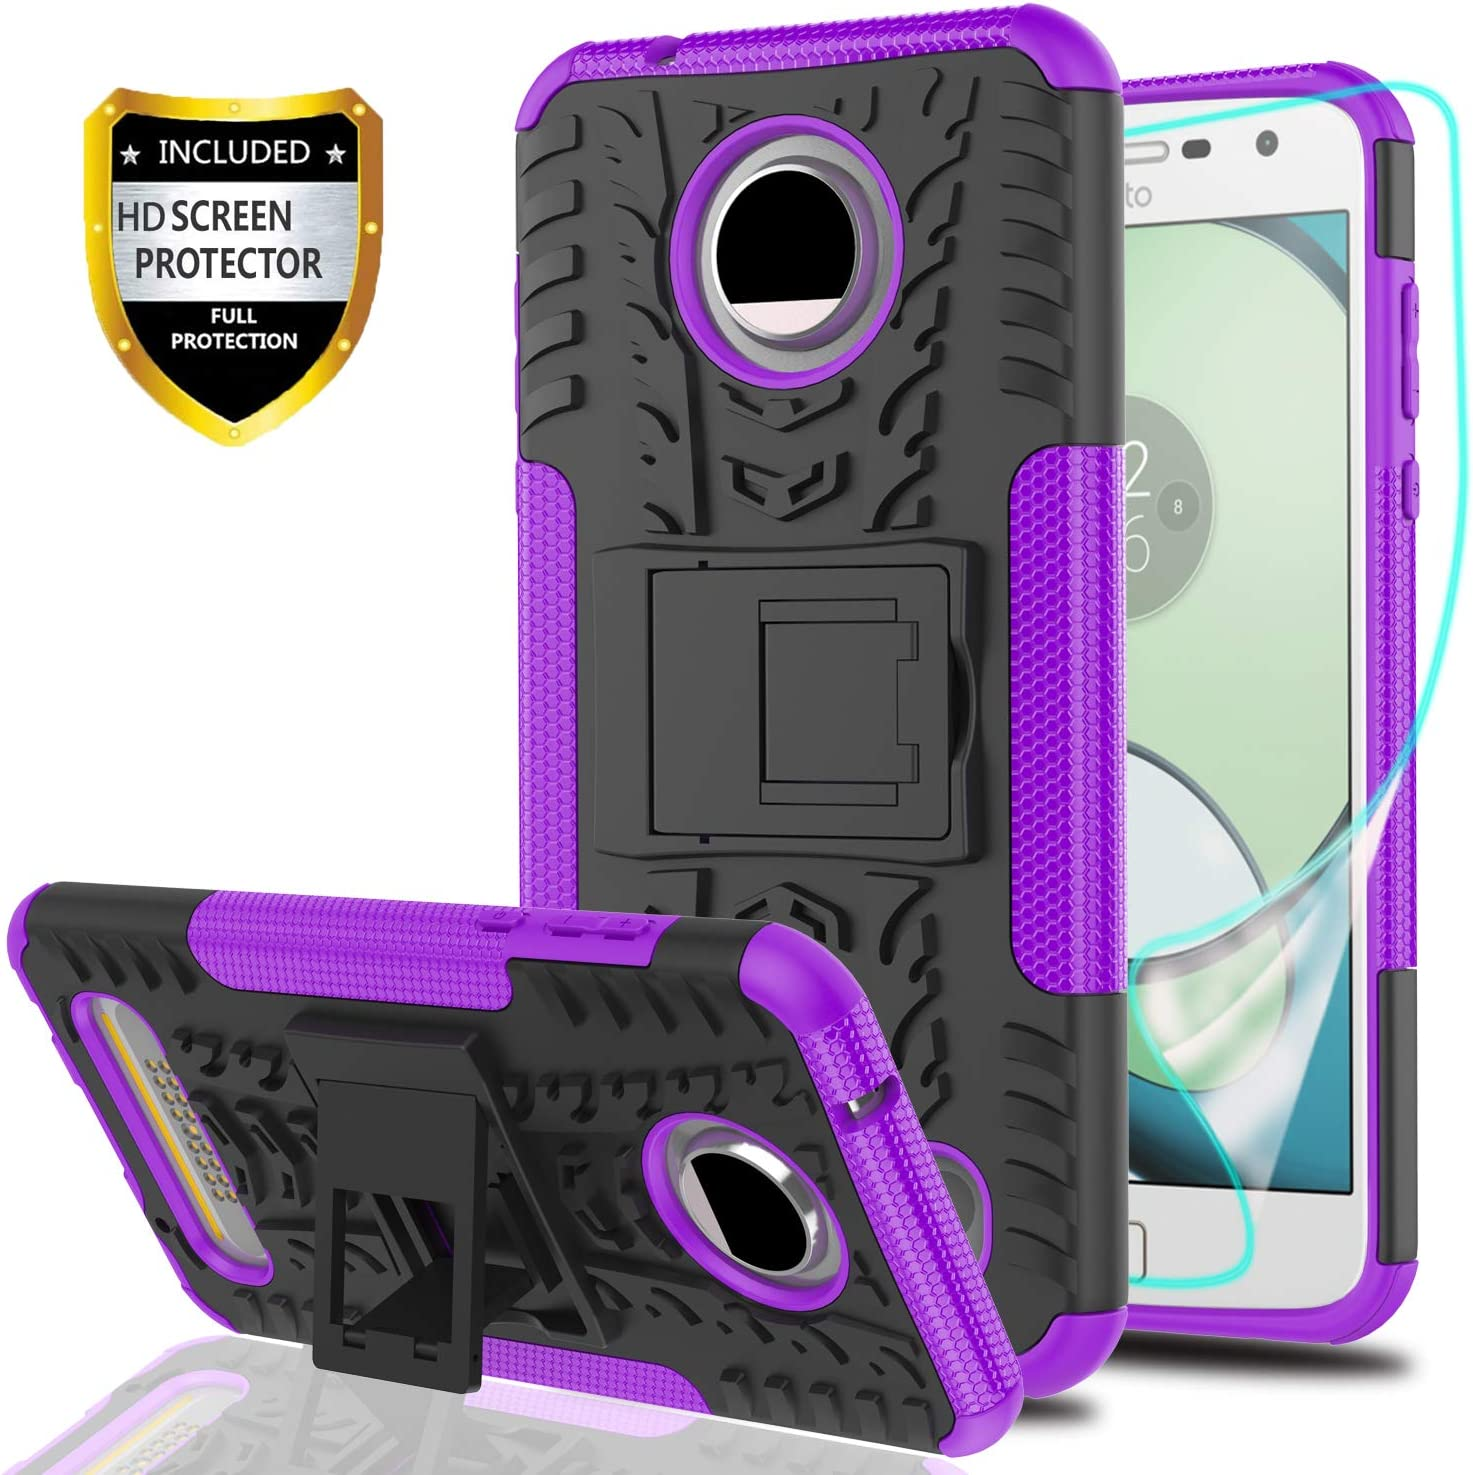 YmhxcY Moto Z2 Play Phone Case with HD Screen Protector,Military Armor Drop Tested [Heavy Duty] Hybrid Case with Kickstand for Motorola Moto Z2 Play Droid-LT Purple